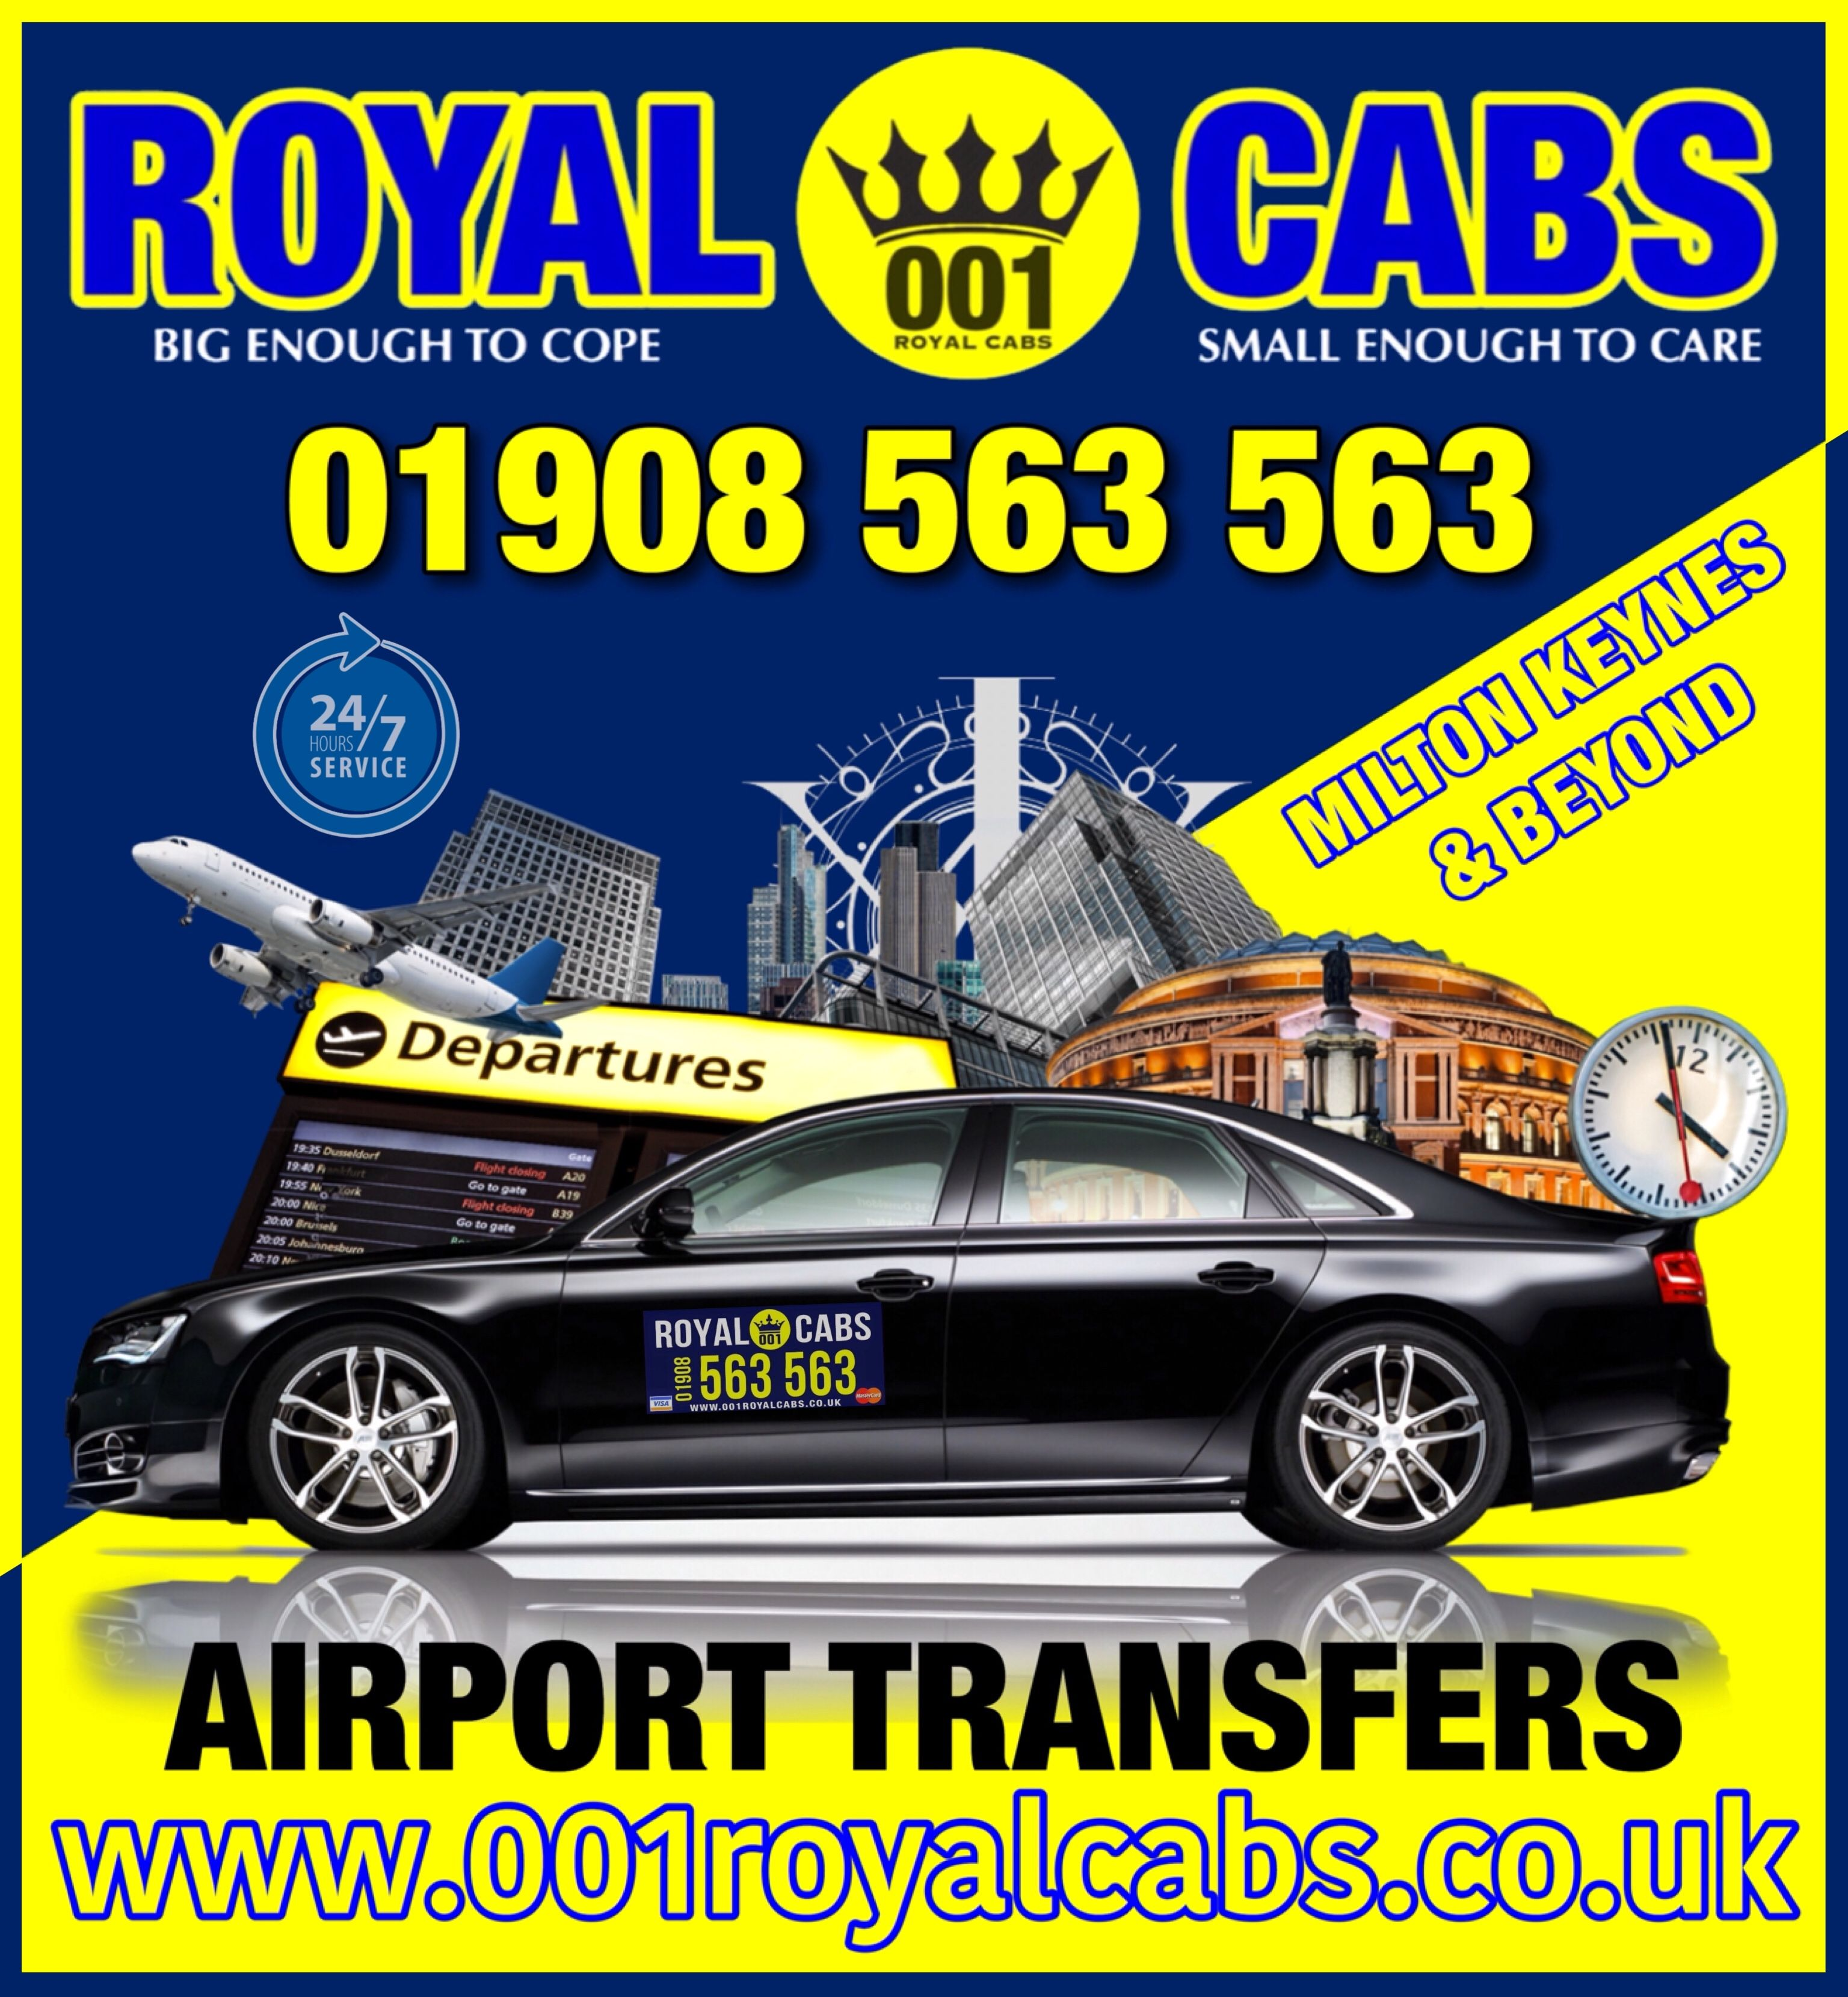 001 ROYAL CABS AIRPORT TRANSFERS We offer the best value door-to-door transfers for all UK Airports. Best price guarantee; On-time guarantee; ...  sc 1 st  Pinterest & 001 ROYAL CABS AIRPORT TRANSFERS We offer the best value door-to ...